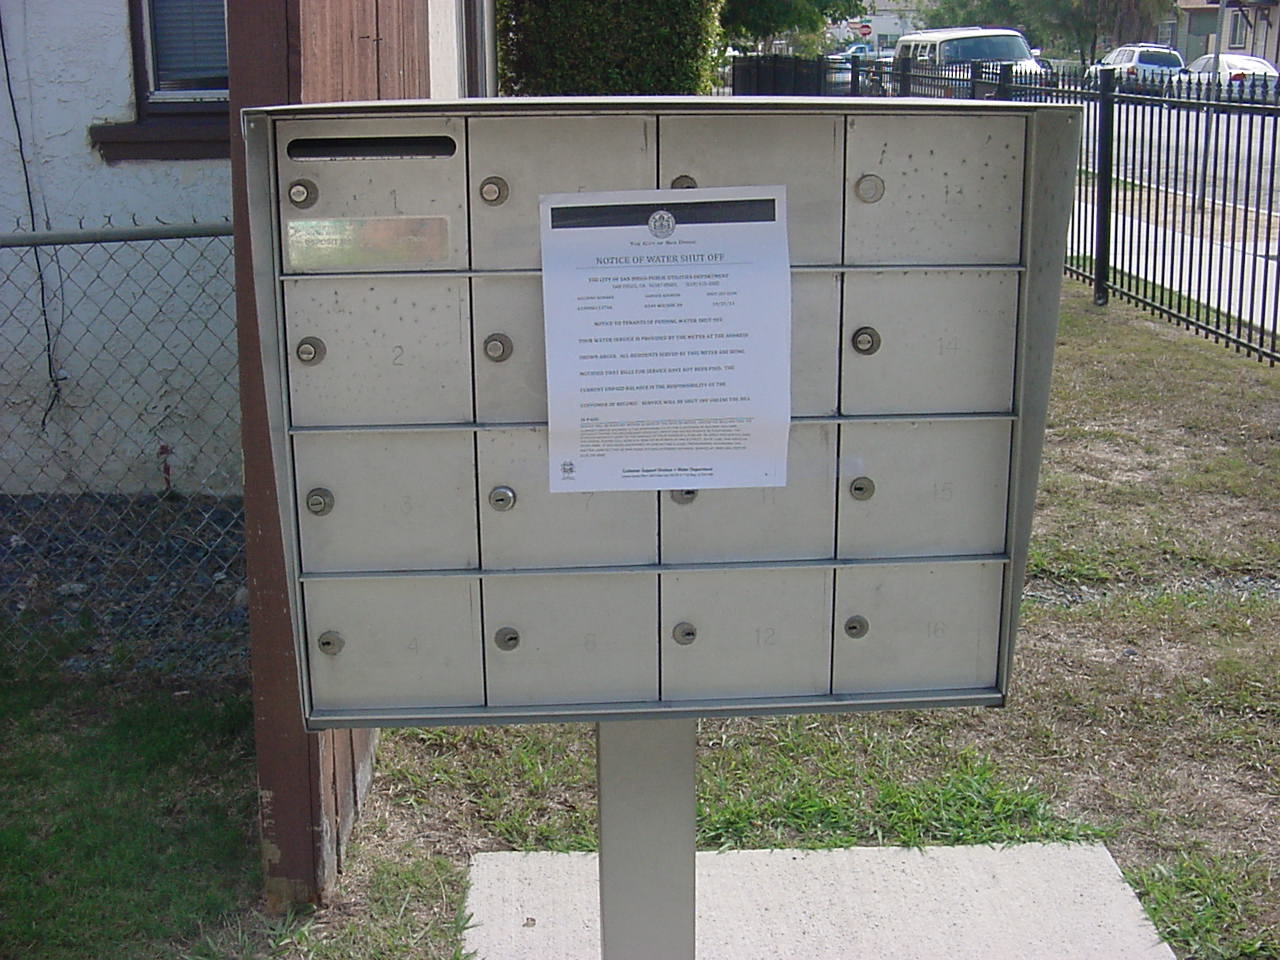 Mailbox Tampering (tenants, inspection, house, illegal) - Renting ...